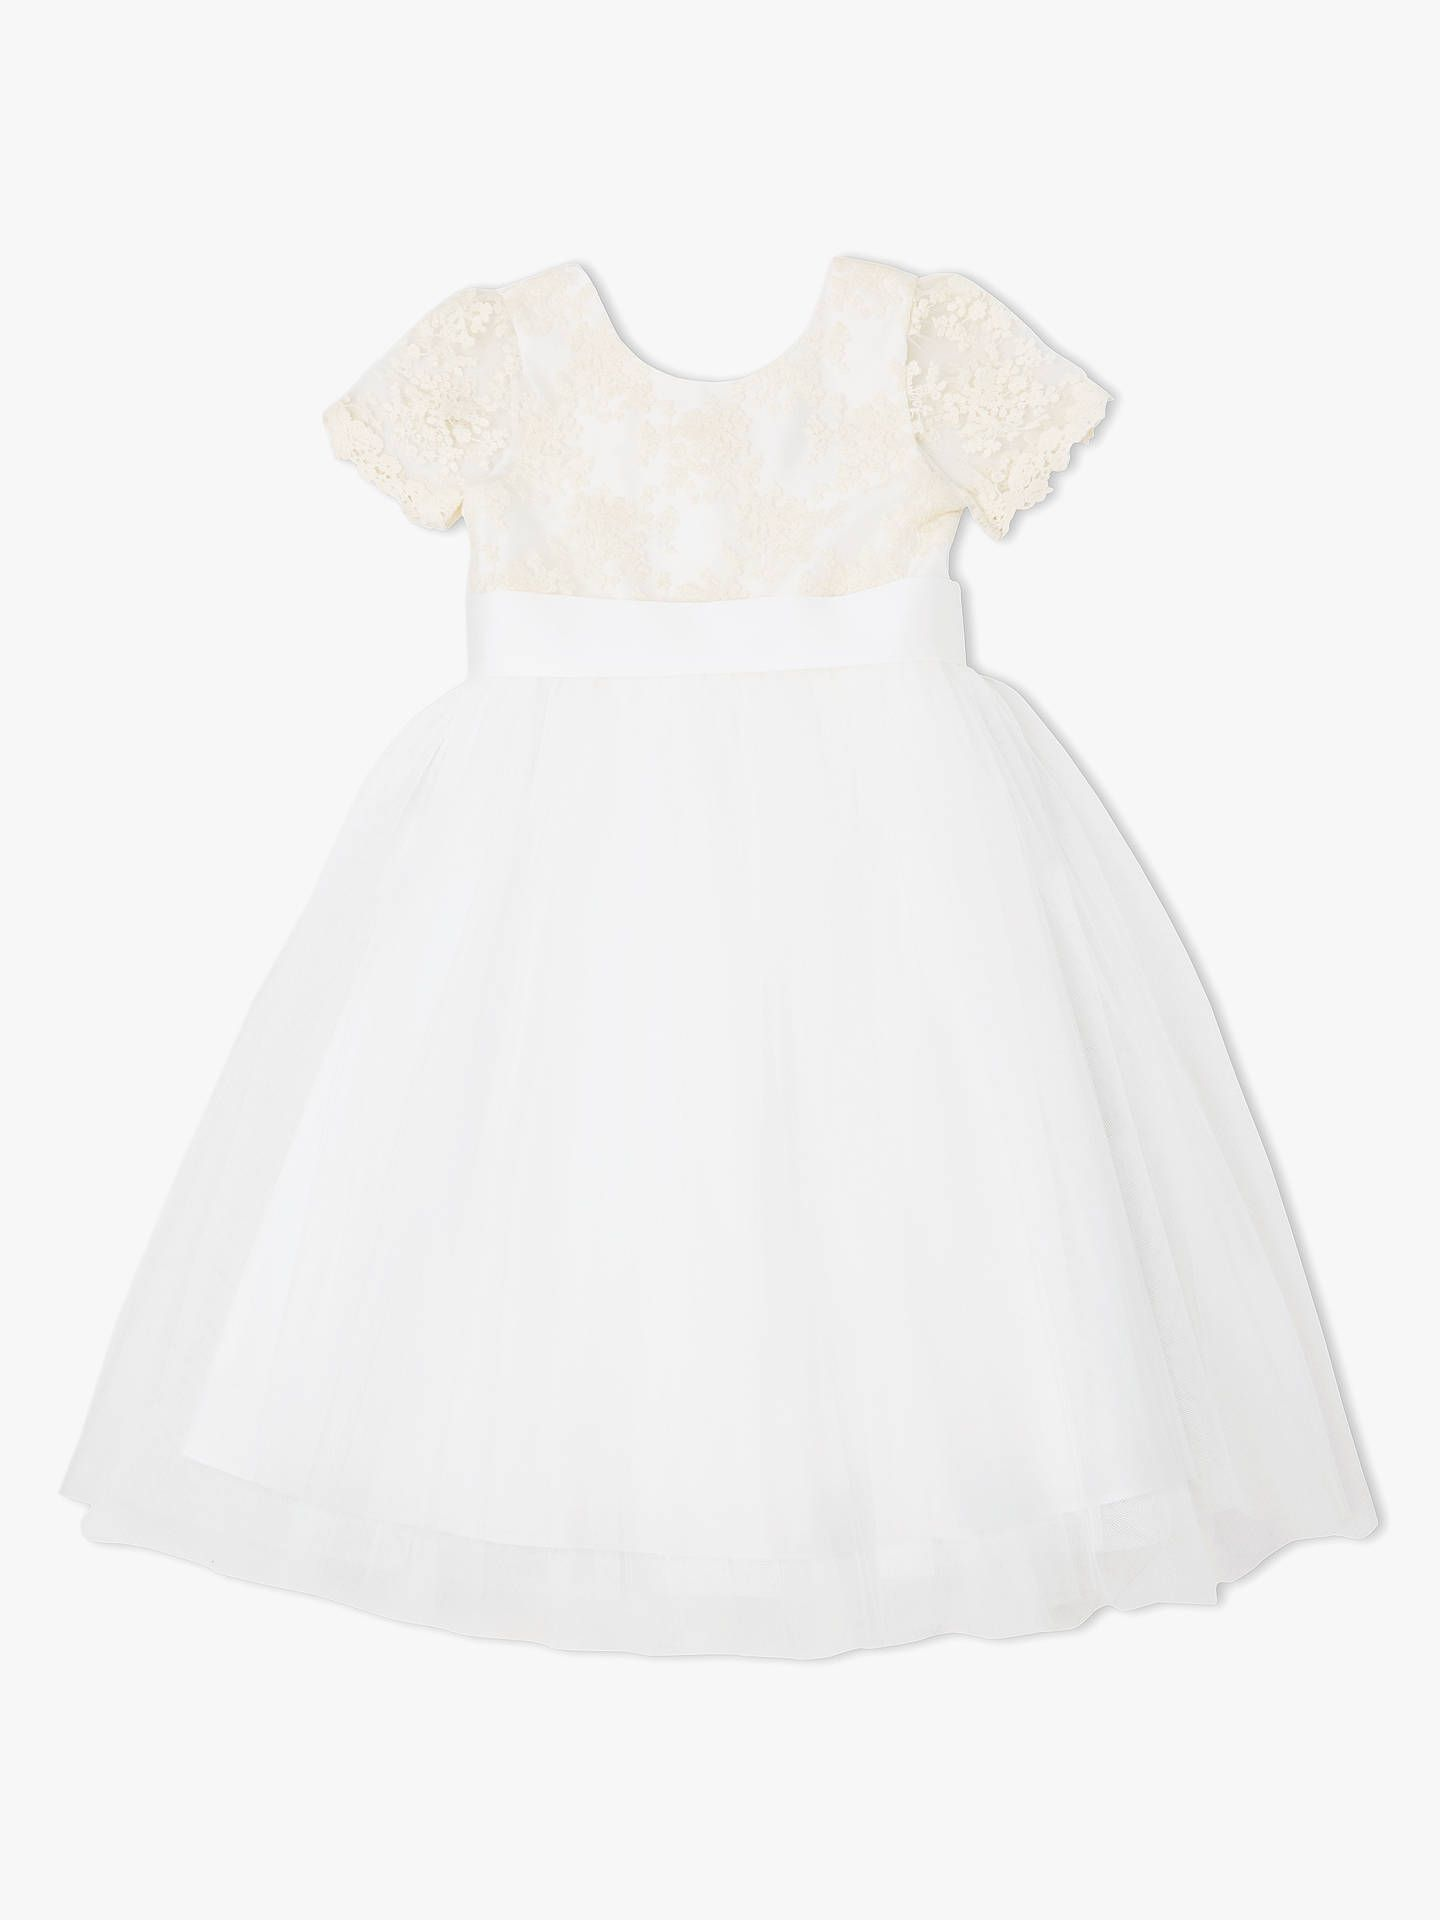 418411e1be7 Baby Flower Girl Dresses John Lewis - Data Dynamic AG